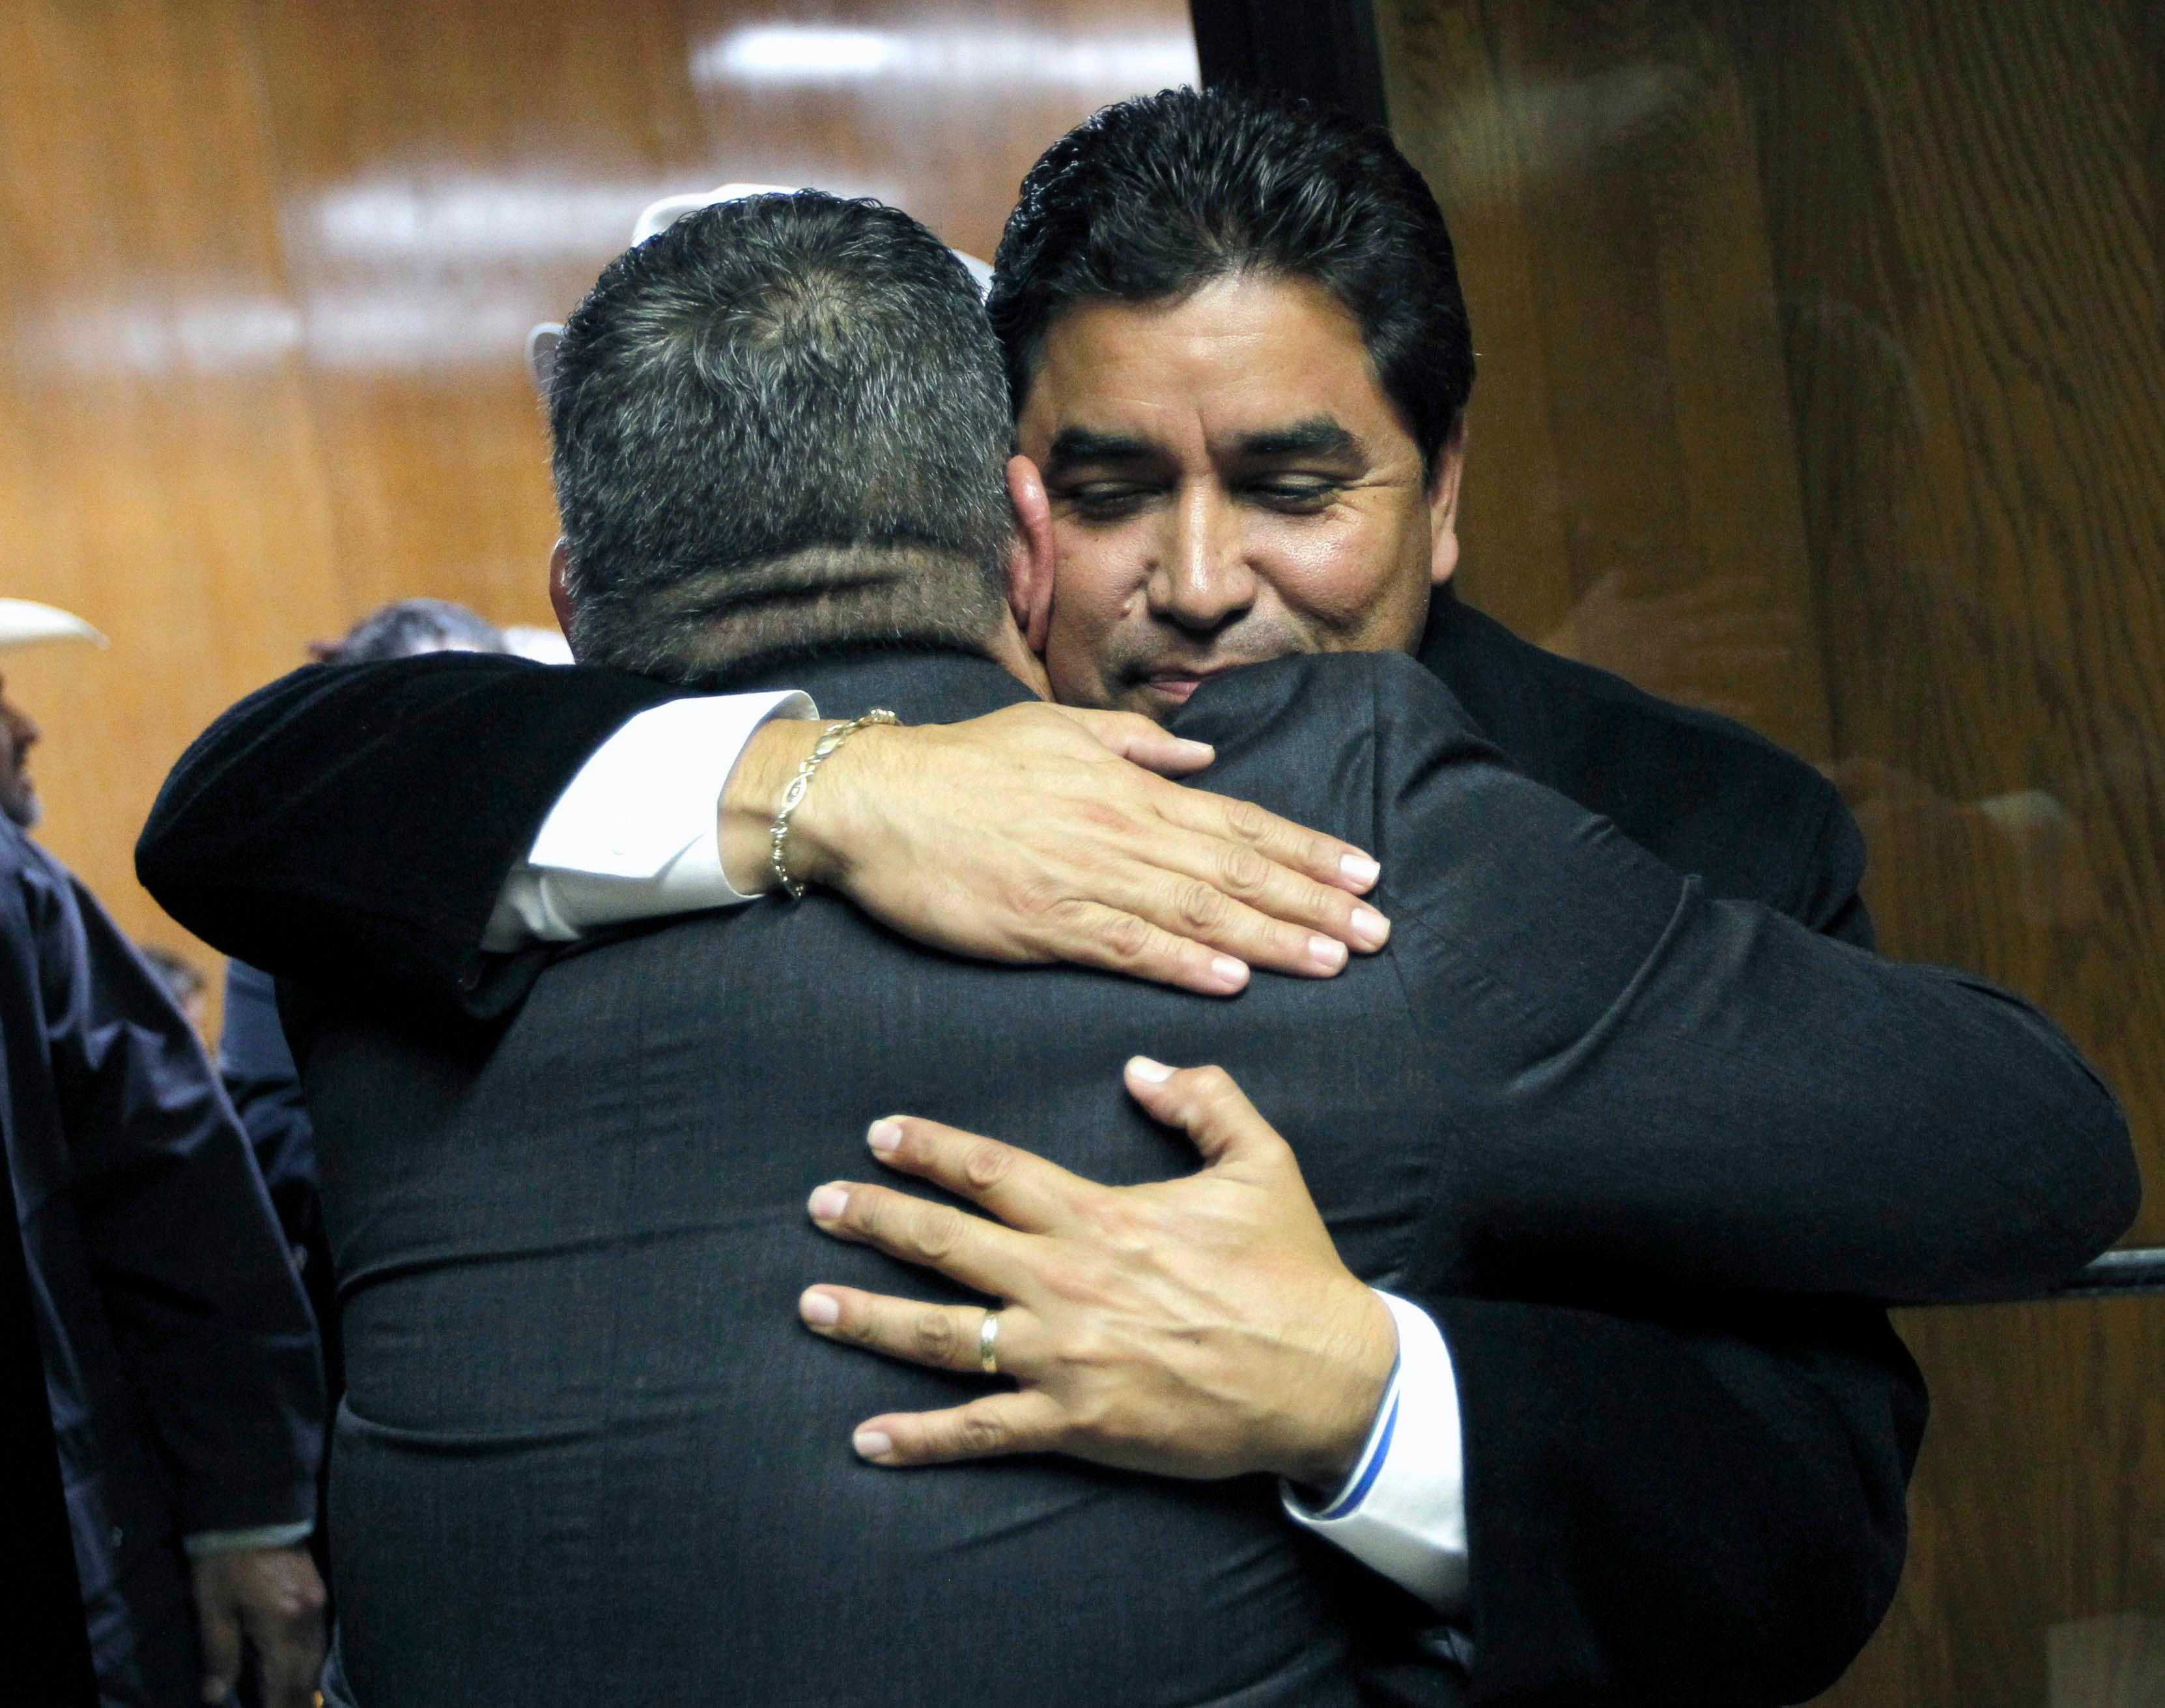 Hidalgo County District Attorney Ricardo Rodriguez hugs Assistant District Attorney Michael Garza following the guilty verdict in John Bernard Feit's trial for the 1960 murder of Irene Garza in the 92nd state District Court Thursday, December 7, 2017, at the Hidalgo County Courthouse in Edinburg.  (Nathan Lambrecht/The Monitor/Pool)